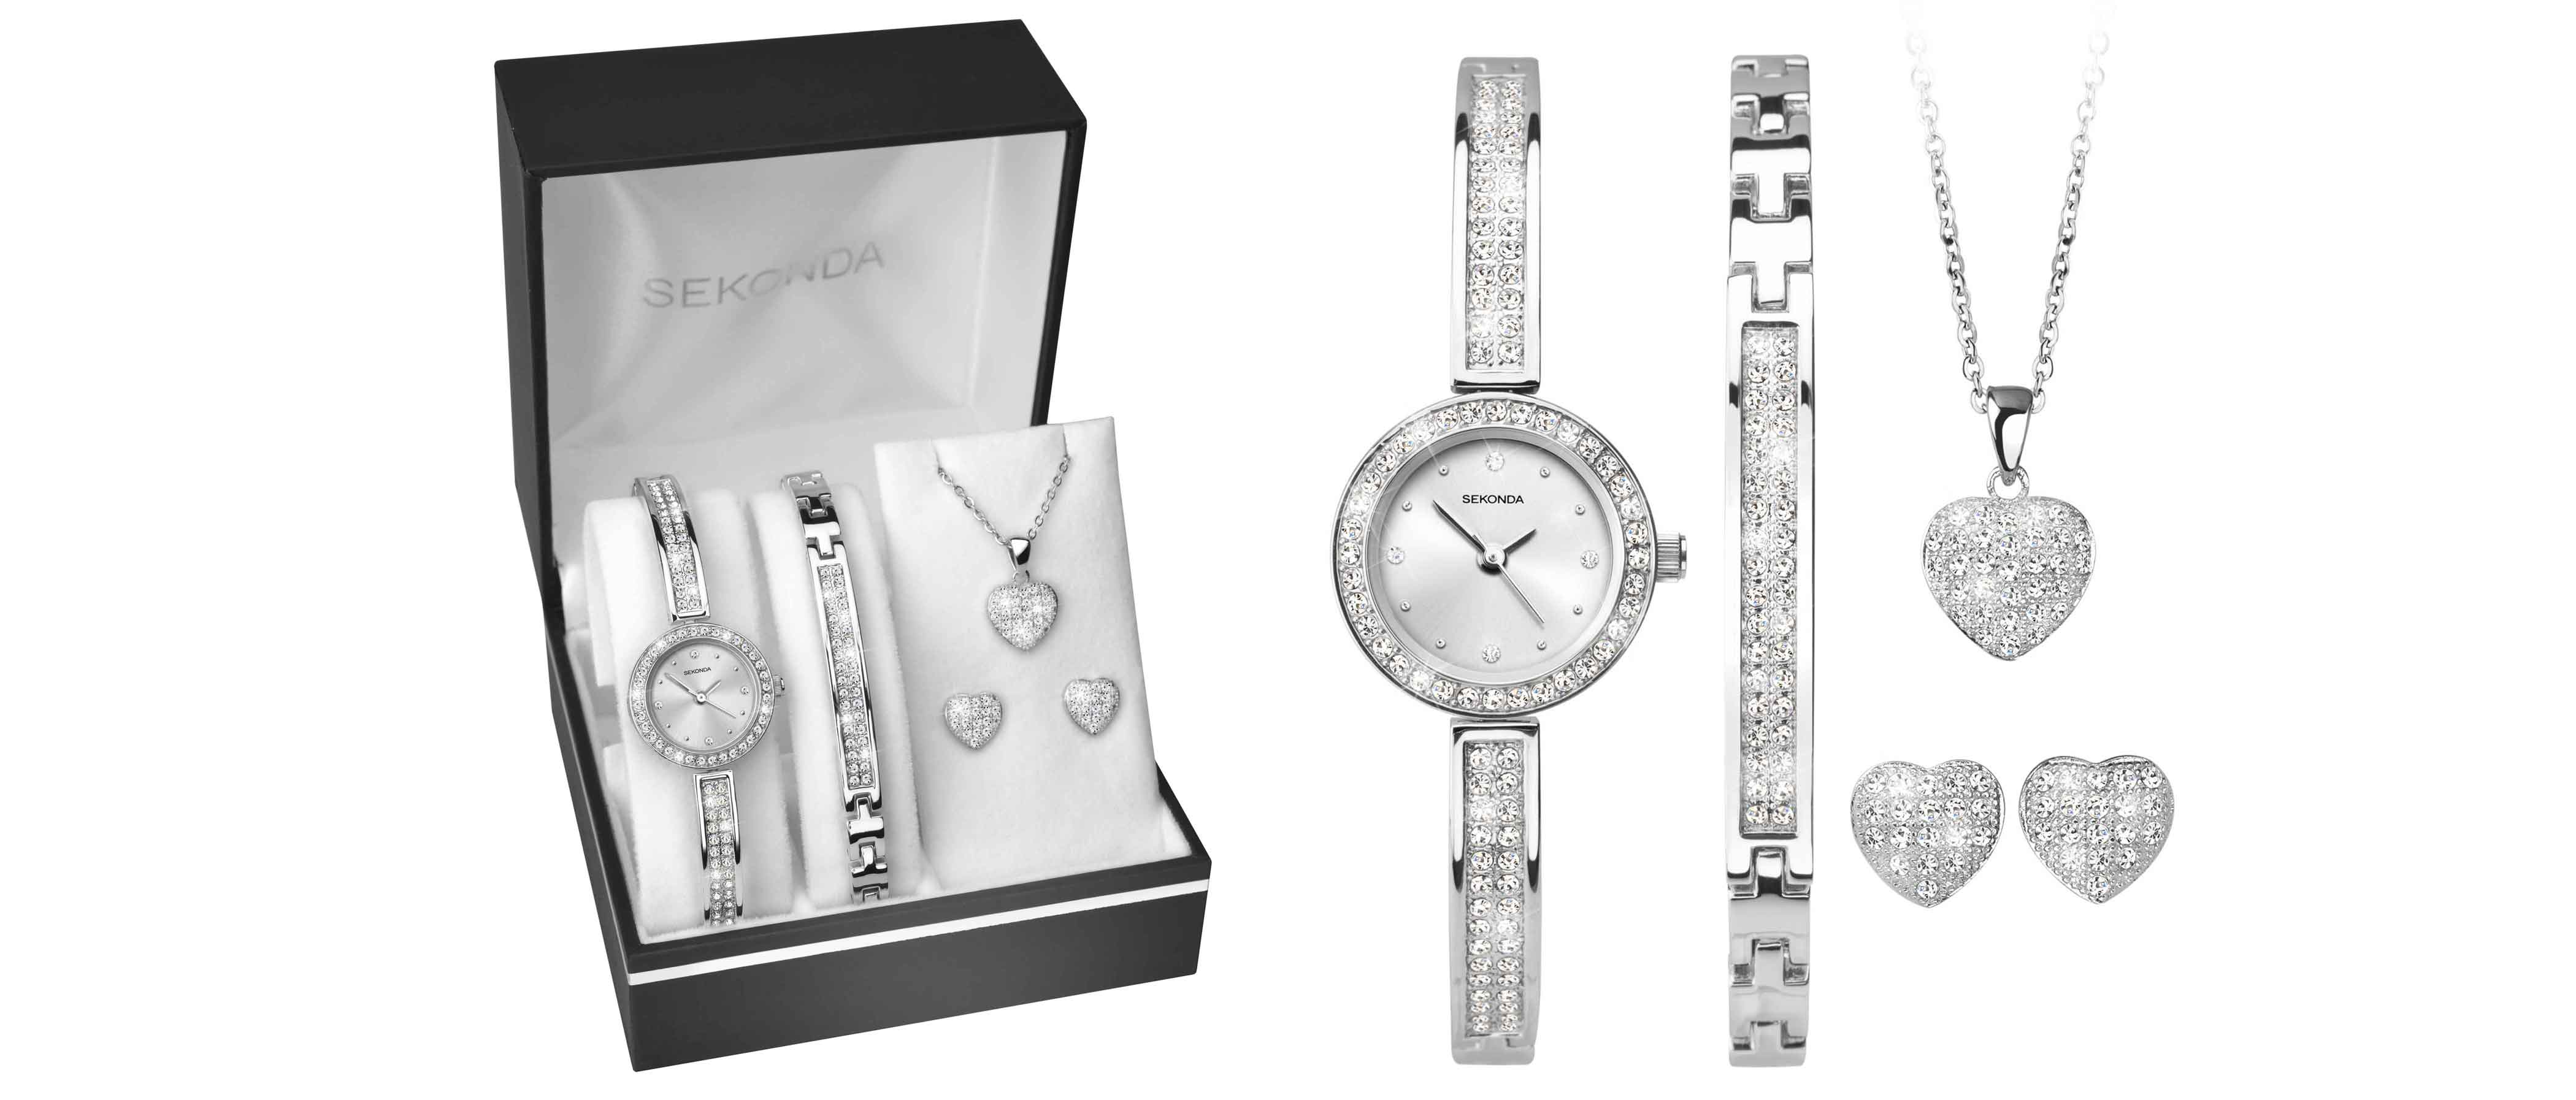 Sekonda 2528G Stone Set Watch, Bracelet, Necklace and Earrings Gift Set - W32163